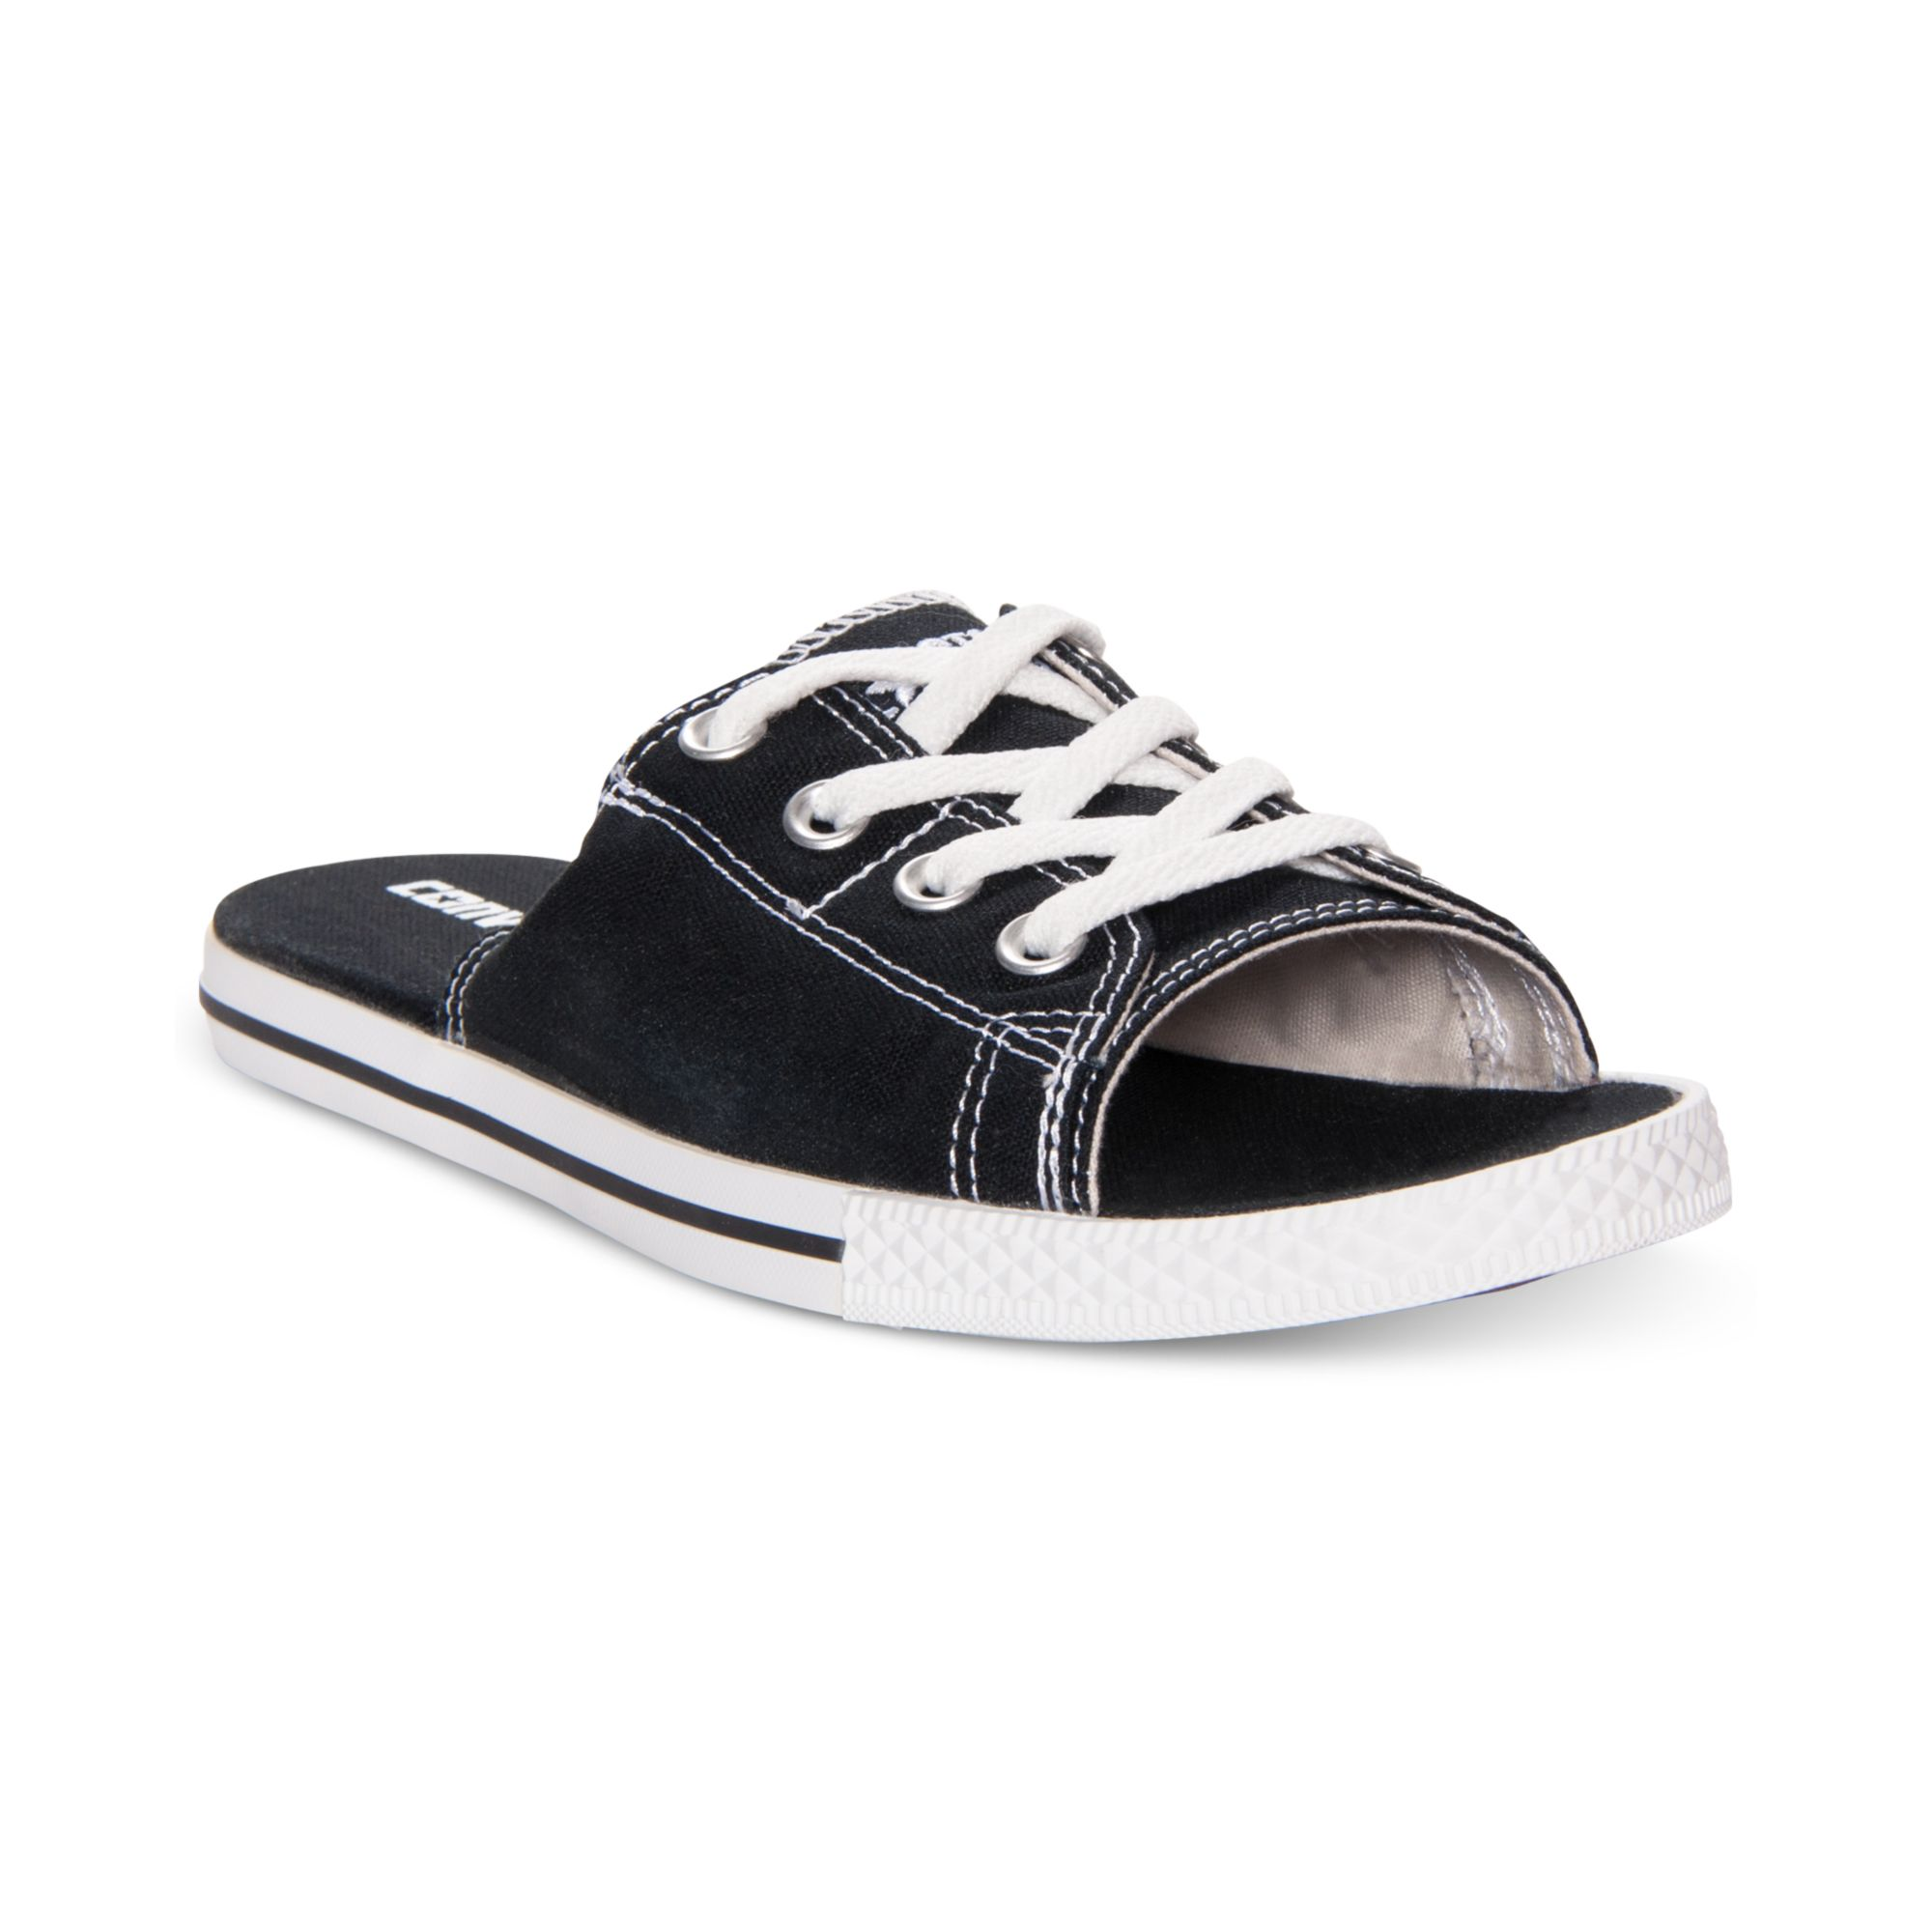 Lyst - Converse All Star Cutaway Evo Slide Sandals in Black 2227a2f31